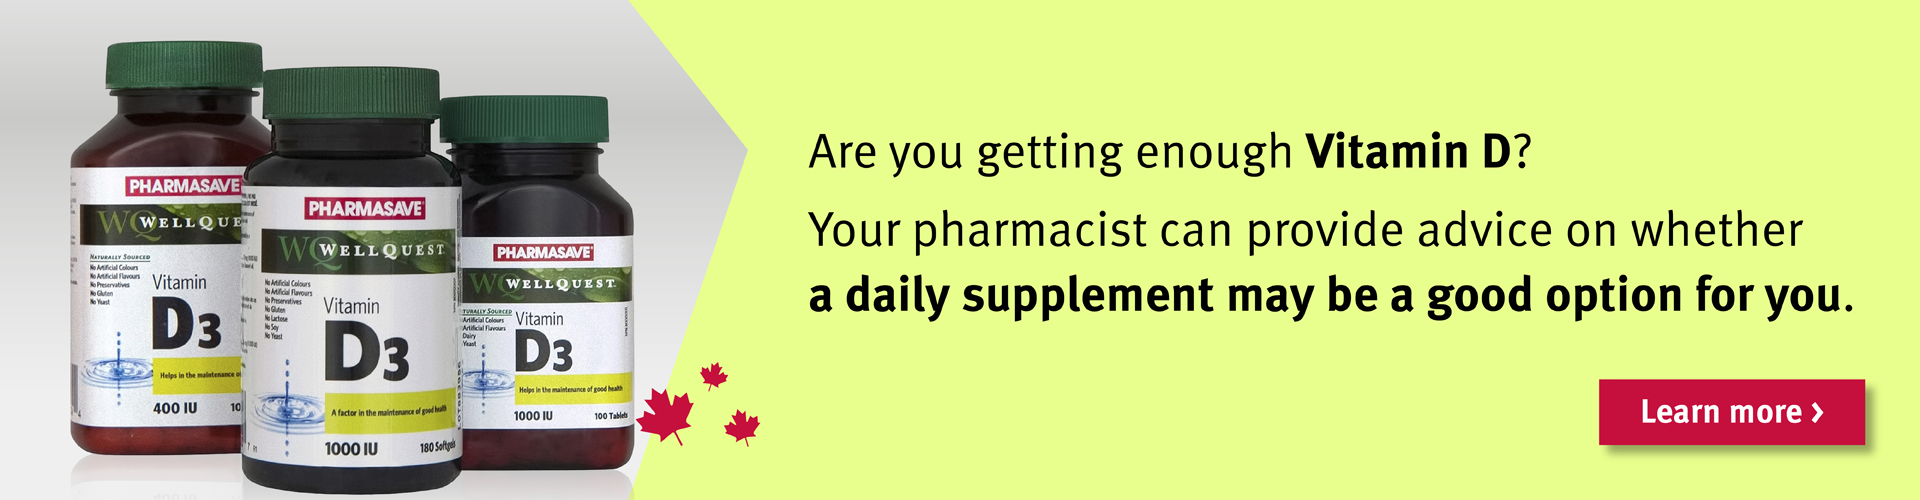 Your pharmacist can provide you with a daily supplement.